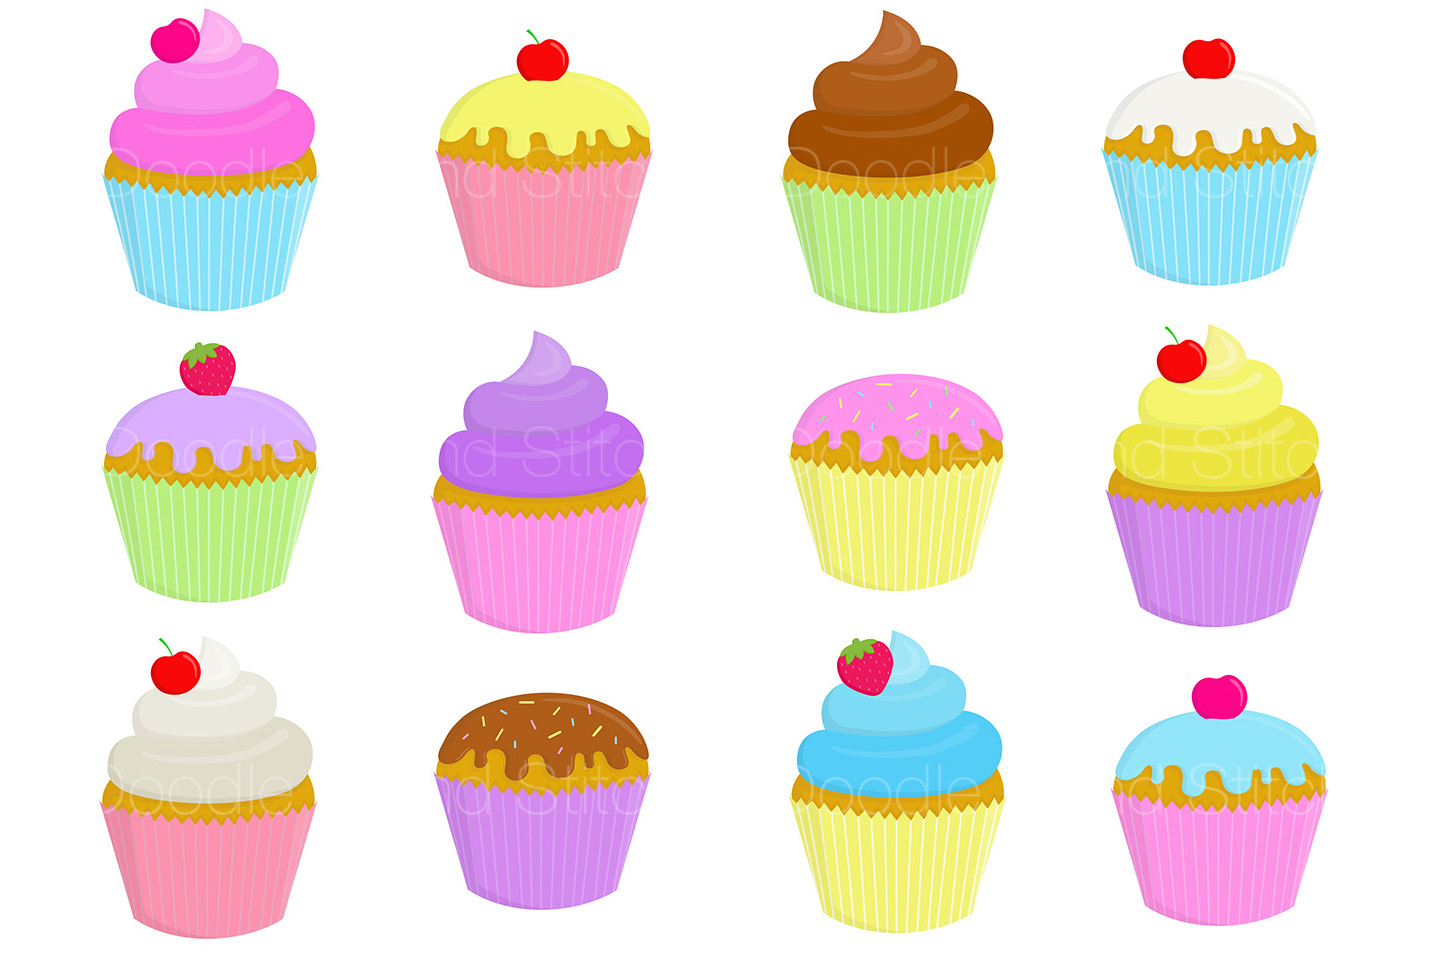 Cupcake Clipart Illustrations example image 2